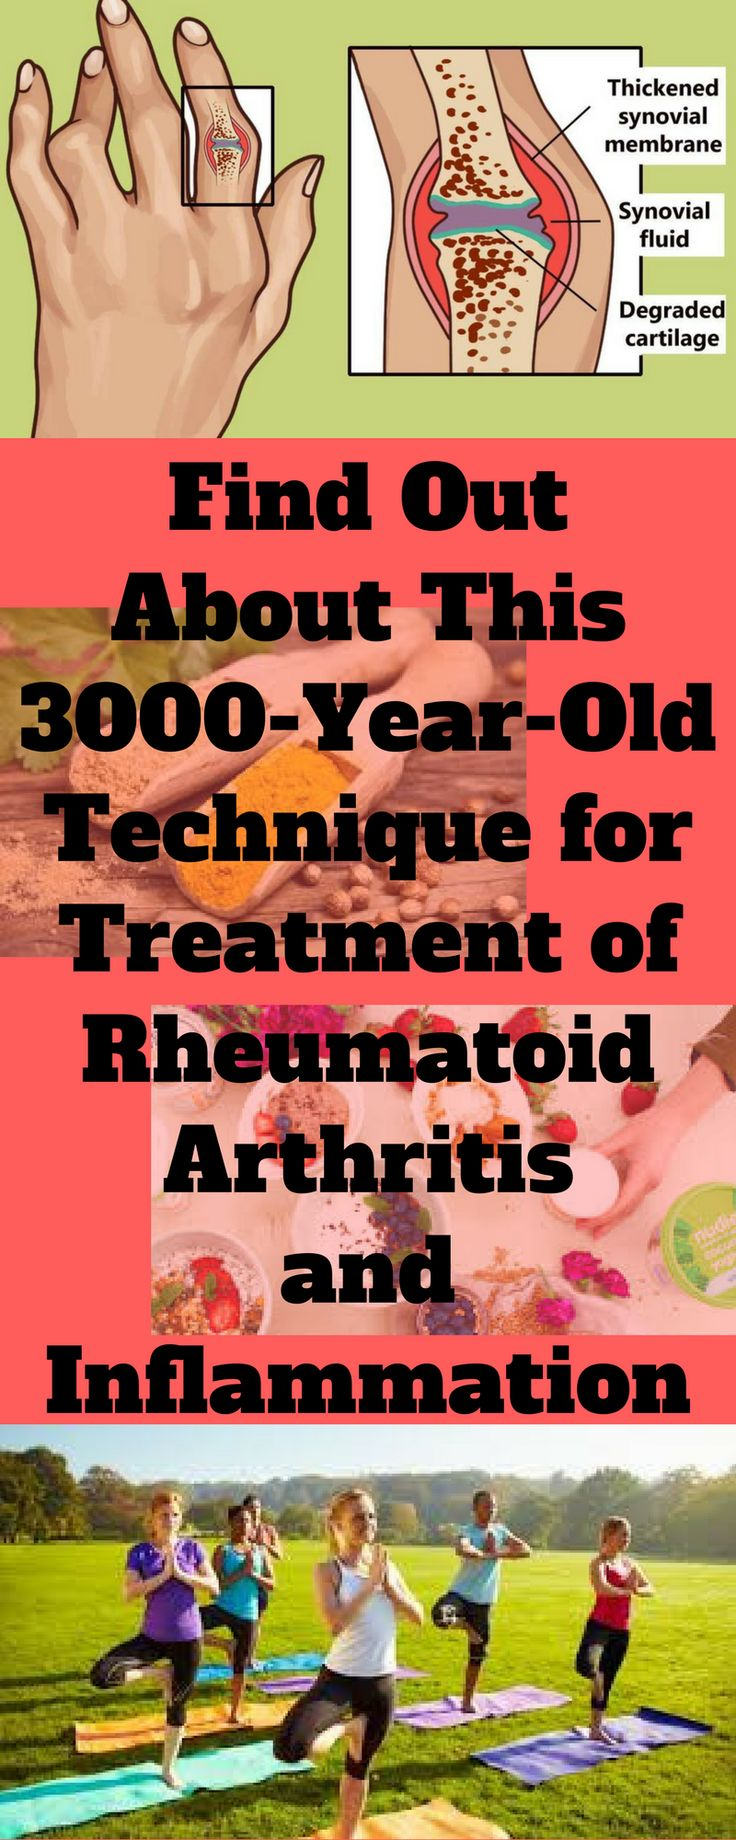 Find Out About This 3000-Year-Old Technique for Treatment of Rheumatoid Arthritis and Inflammation